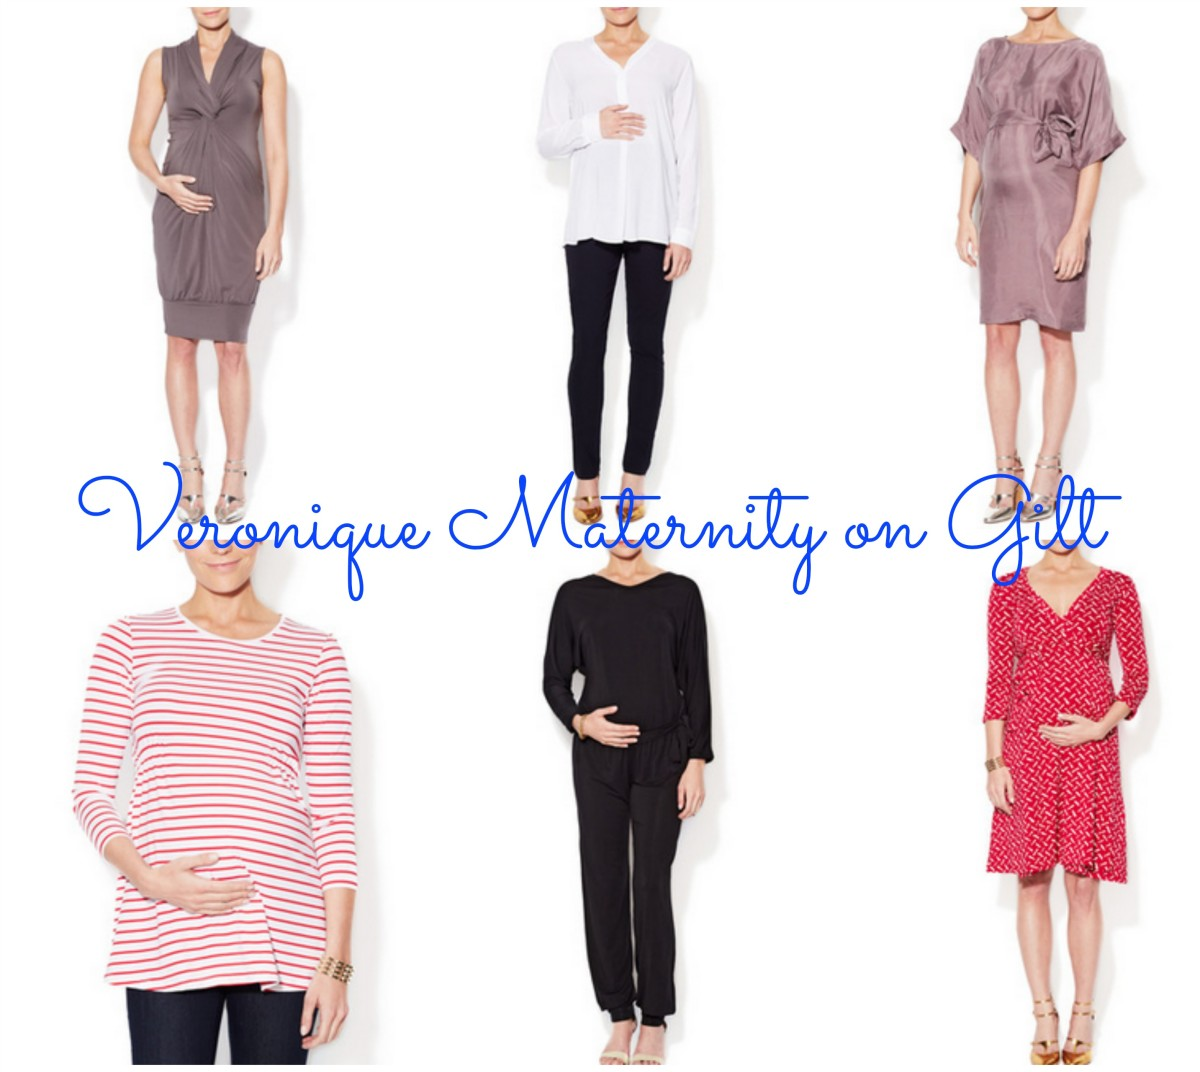 Homegoods Com Online Shopping: Brianne In The City: HomeGoods, Veronique Maternity At